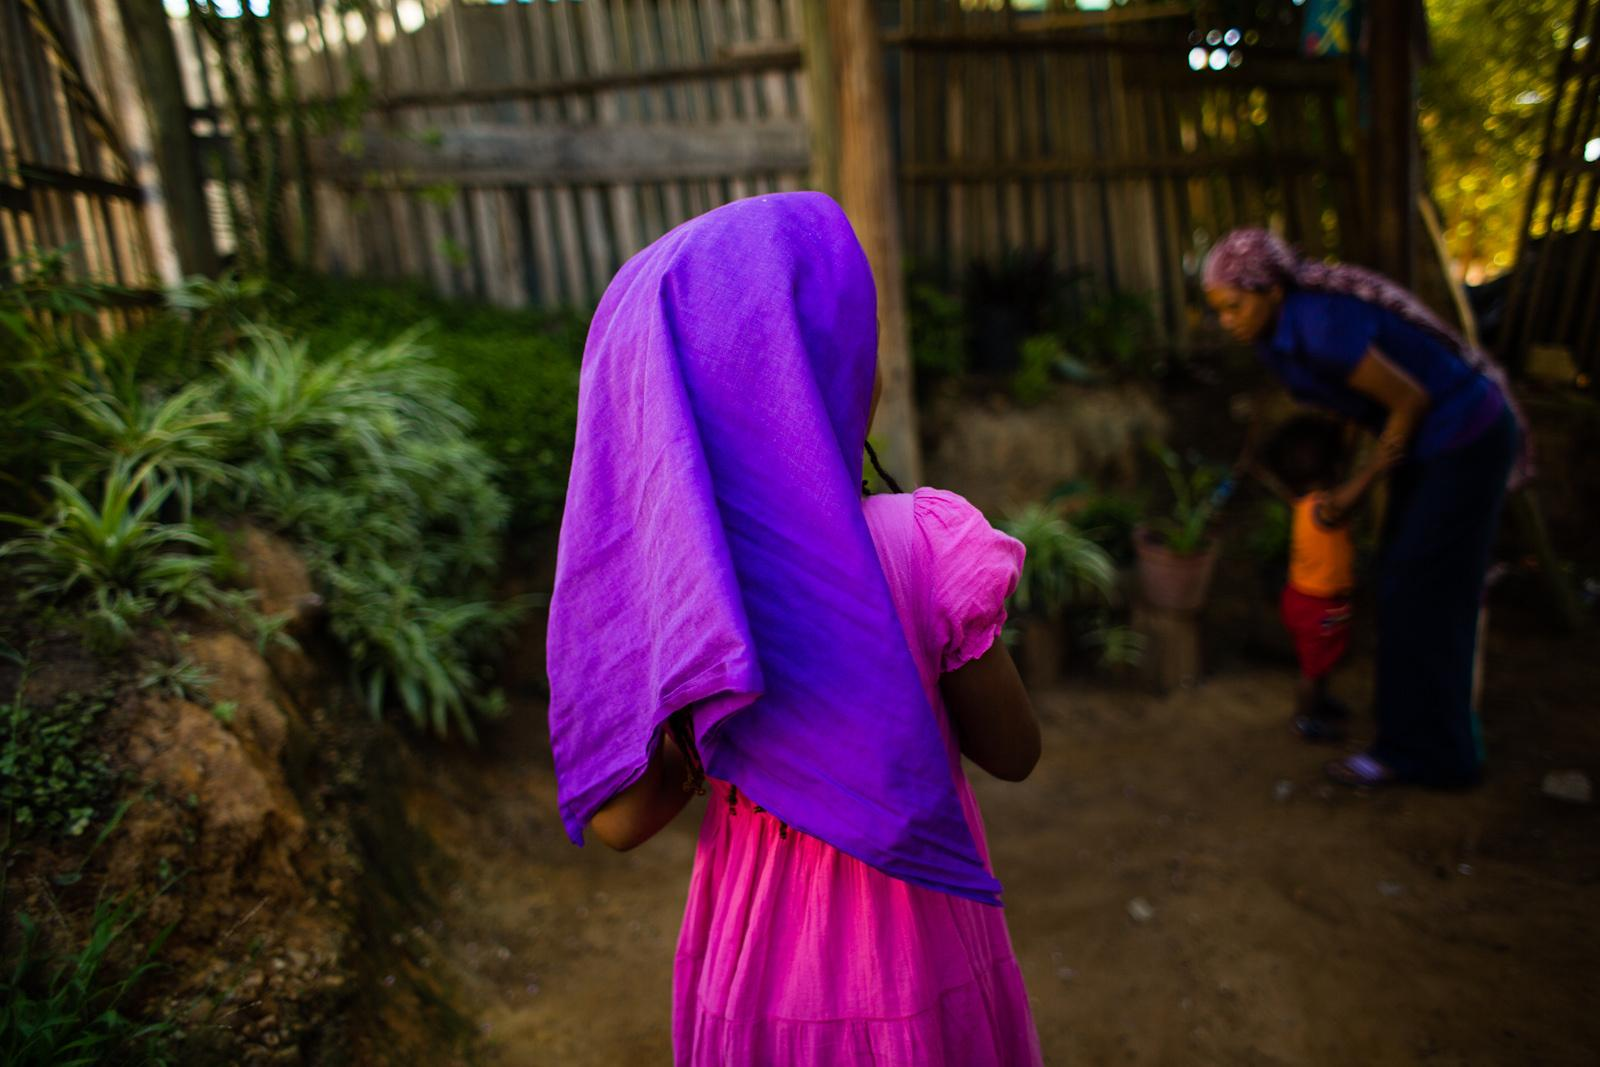 KNYSNA, SOUTH AFRICA - APRIL 12, 2015: Naphiteta (C ) stands in front of her home while her mother takes care of the youngest of her nine children in Judah Square, a Rastafari community in Knysna, South Africa on April 13, 2015. The family belongs to the 'Bobo Shanti', the strictes of the three mansions within Rastafari culture, which demands, among others, a constant covering of their hair.